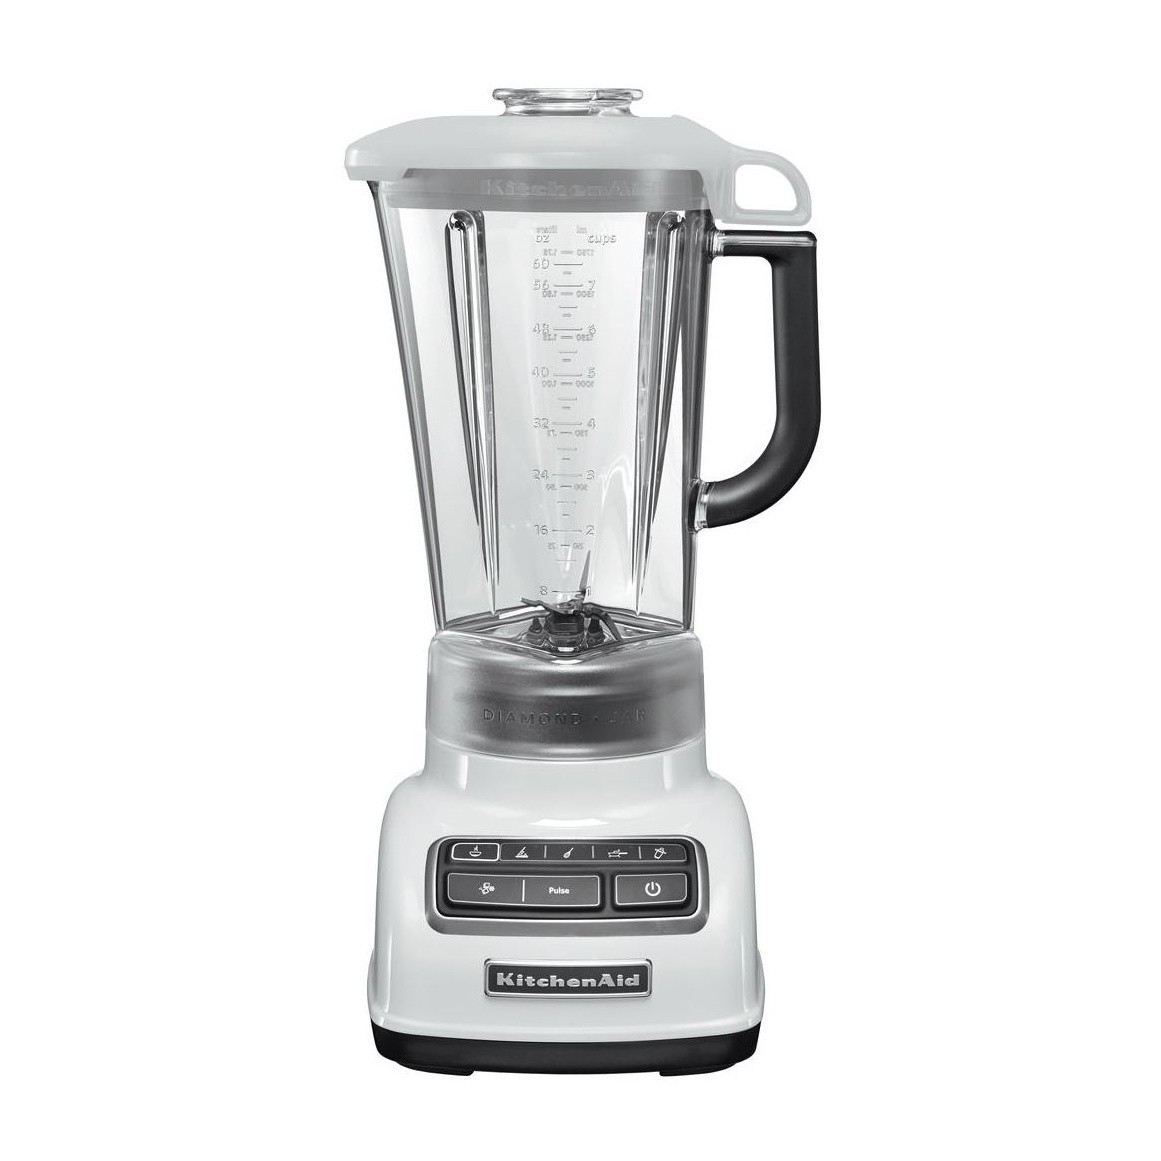 KitchenAid Classic 5KSB1585 Blender | KitchenAid